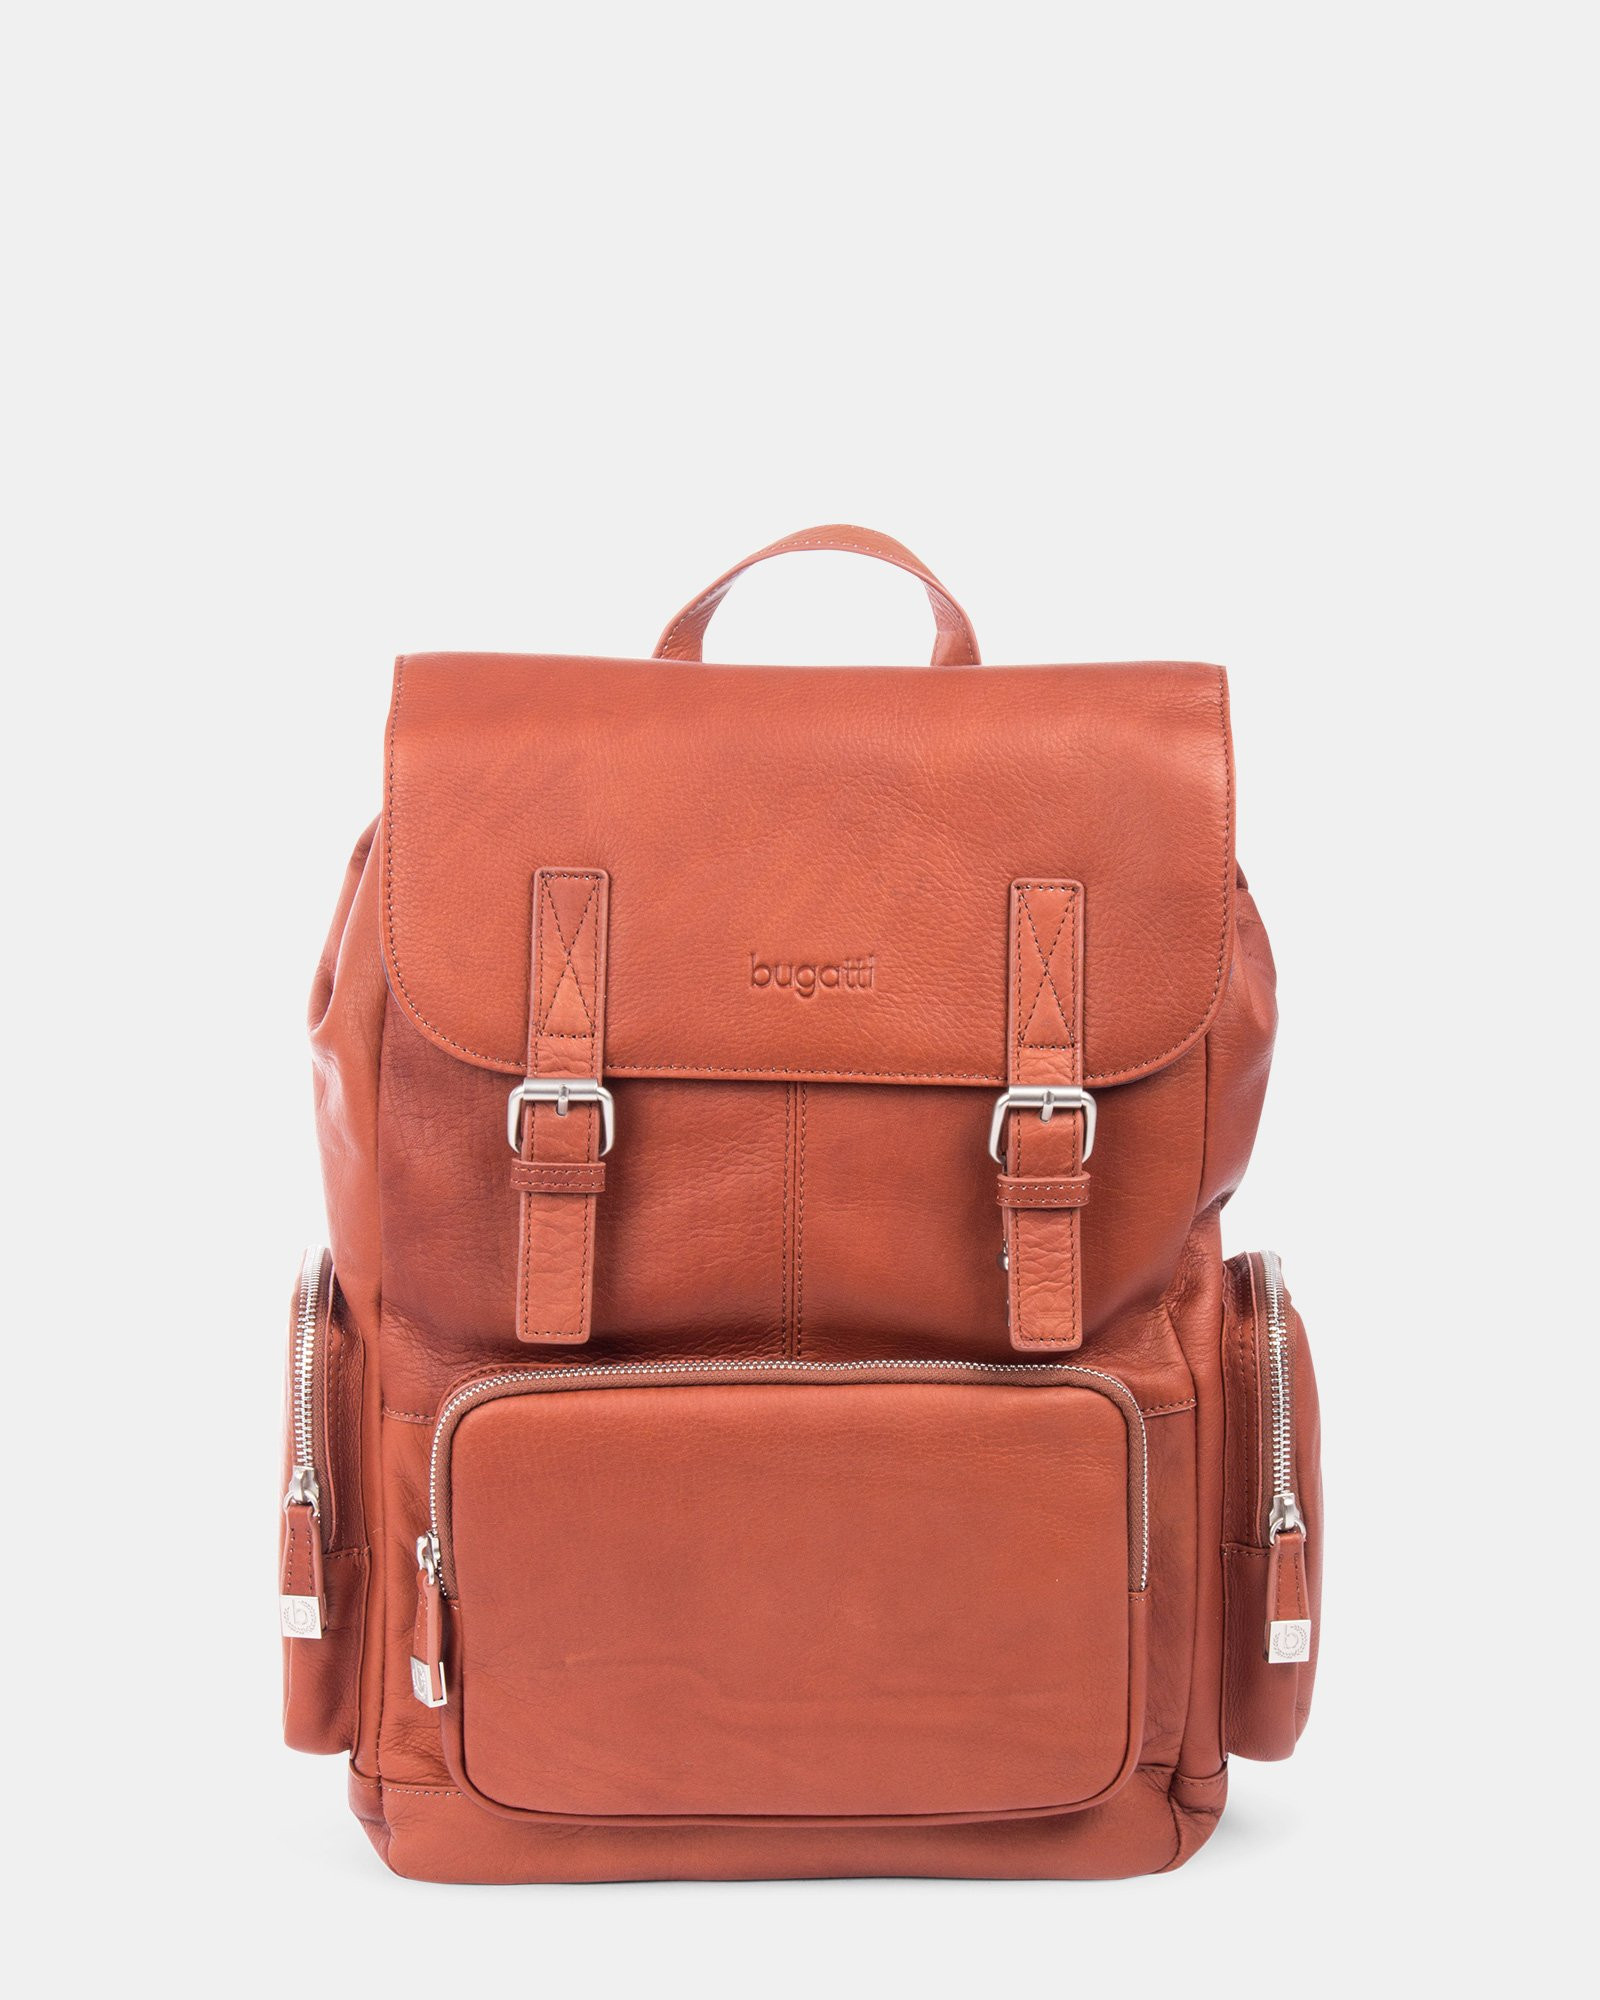 SARTORIA - Multifunctional pockets LEATHER Backpack FOR 15.6 IN LAPTOP - Cognac - Bugatti - Zoom